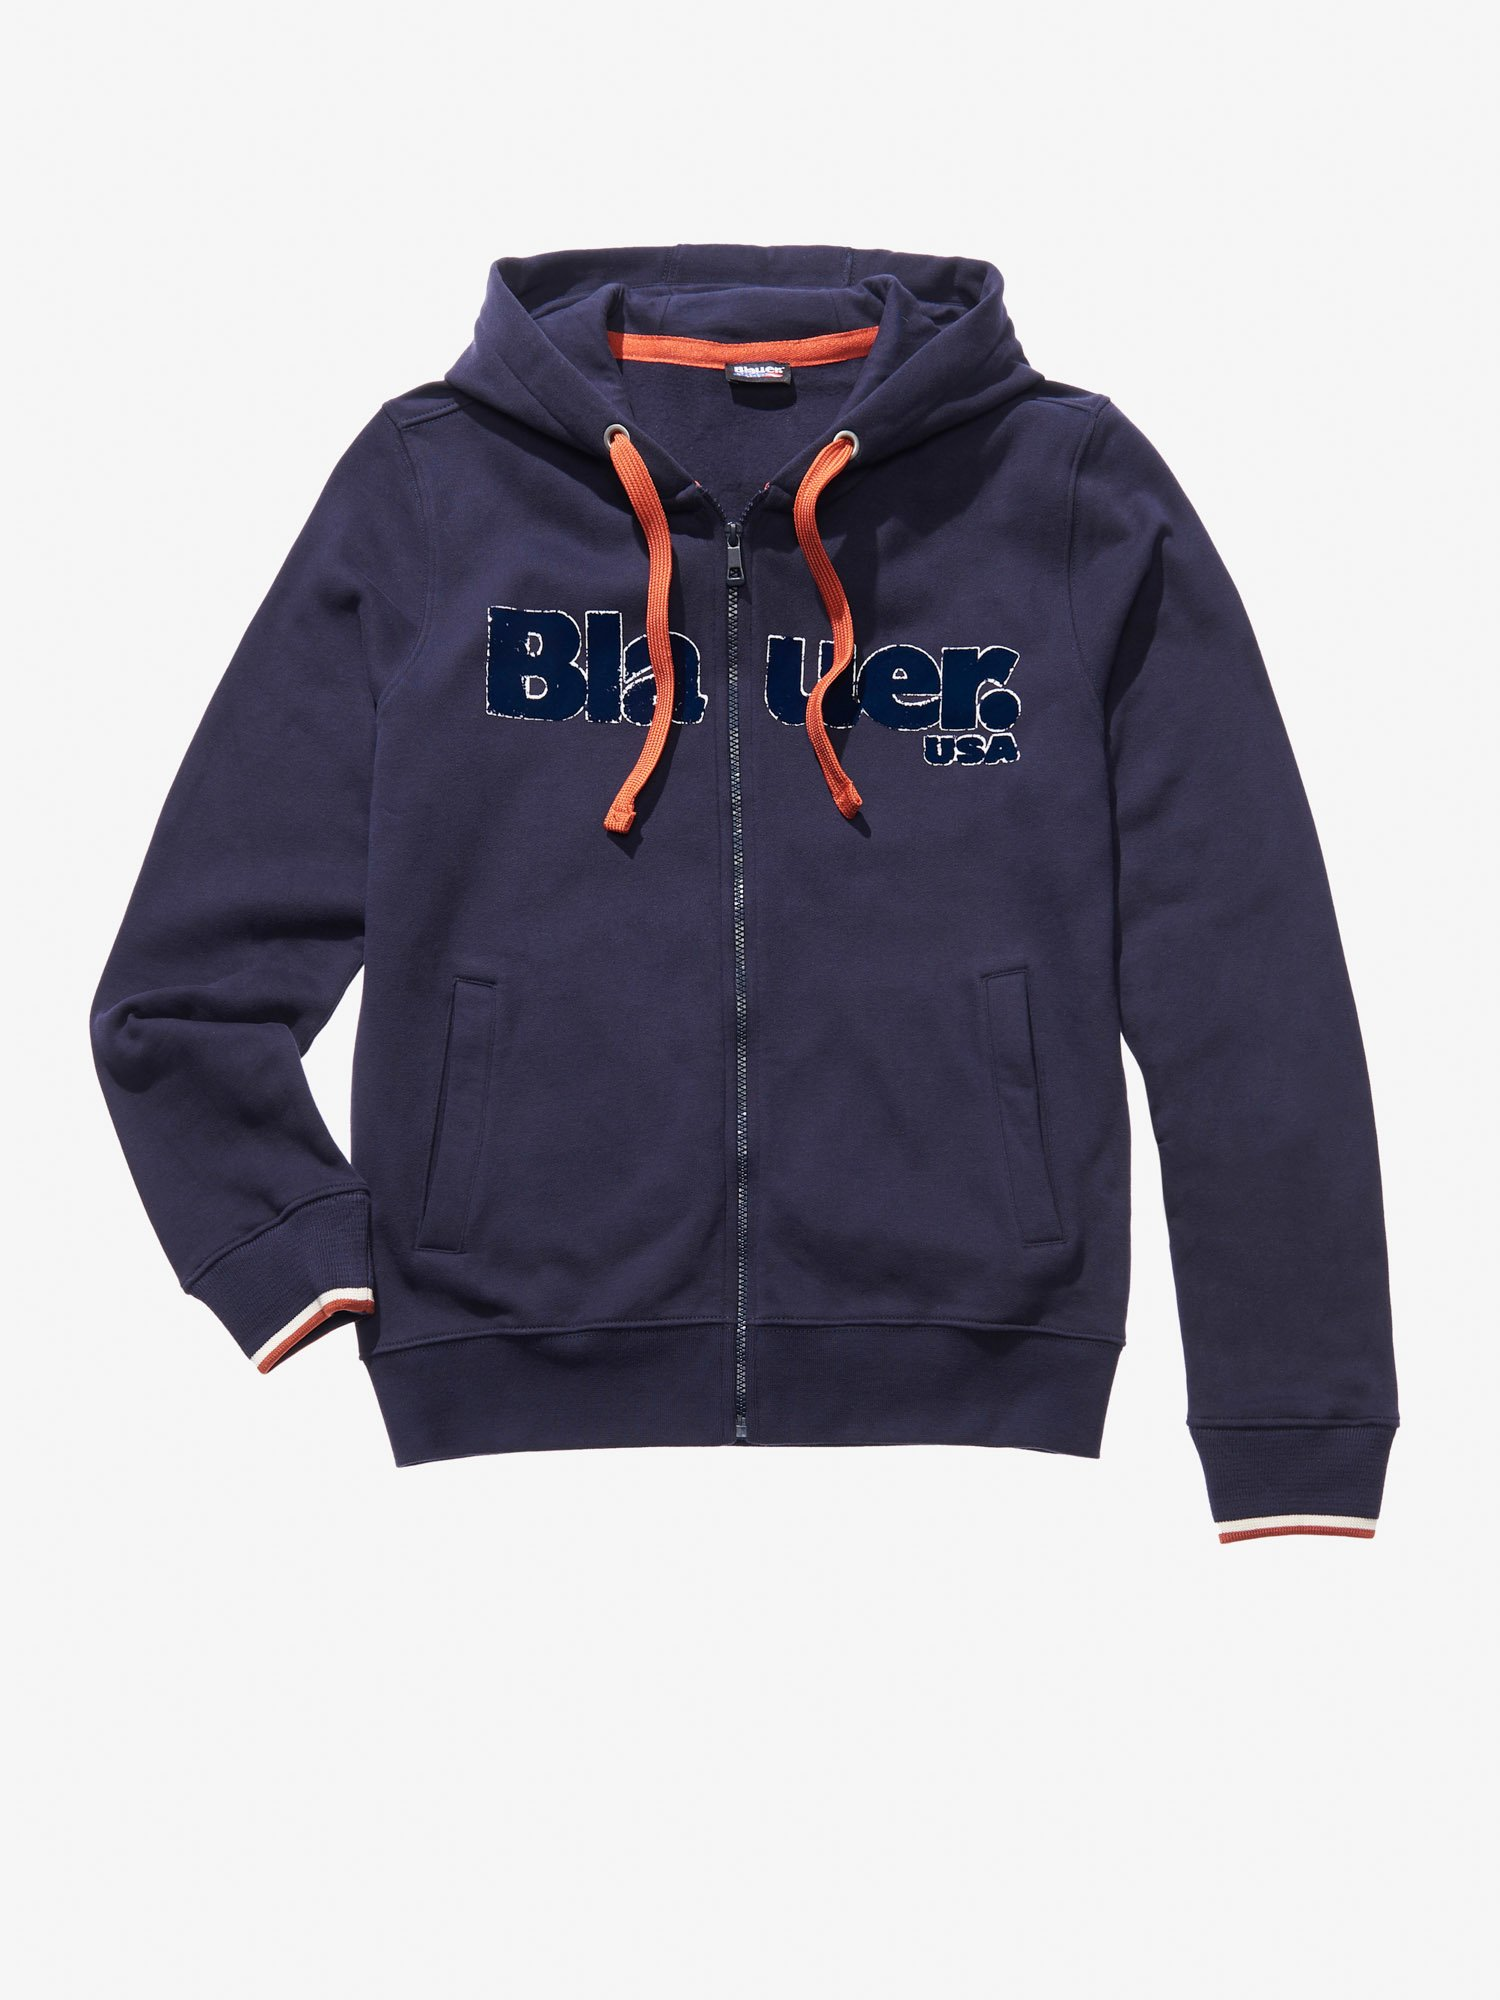 HOODED ZIP HEAVY SWEATSHIRT - Blauer